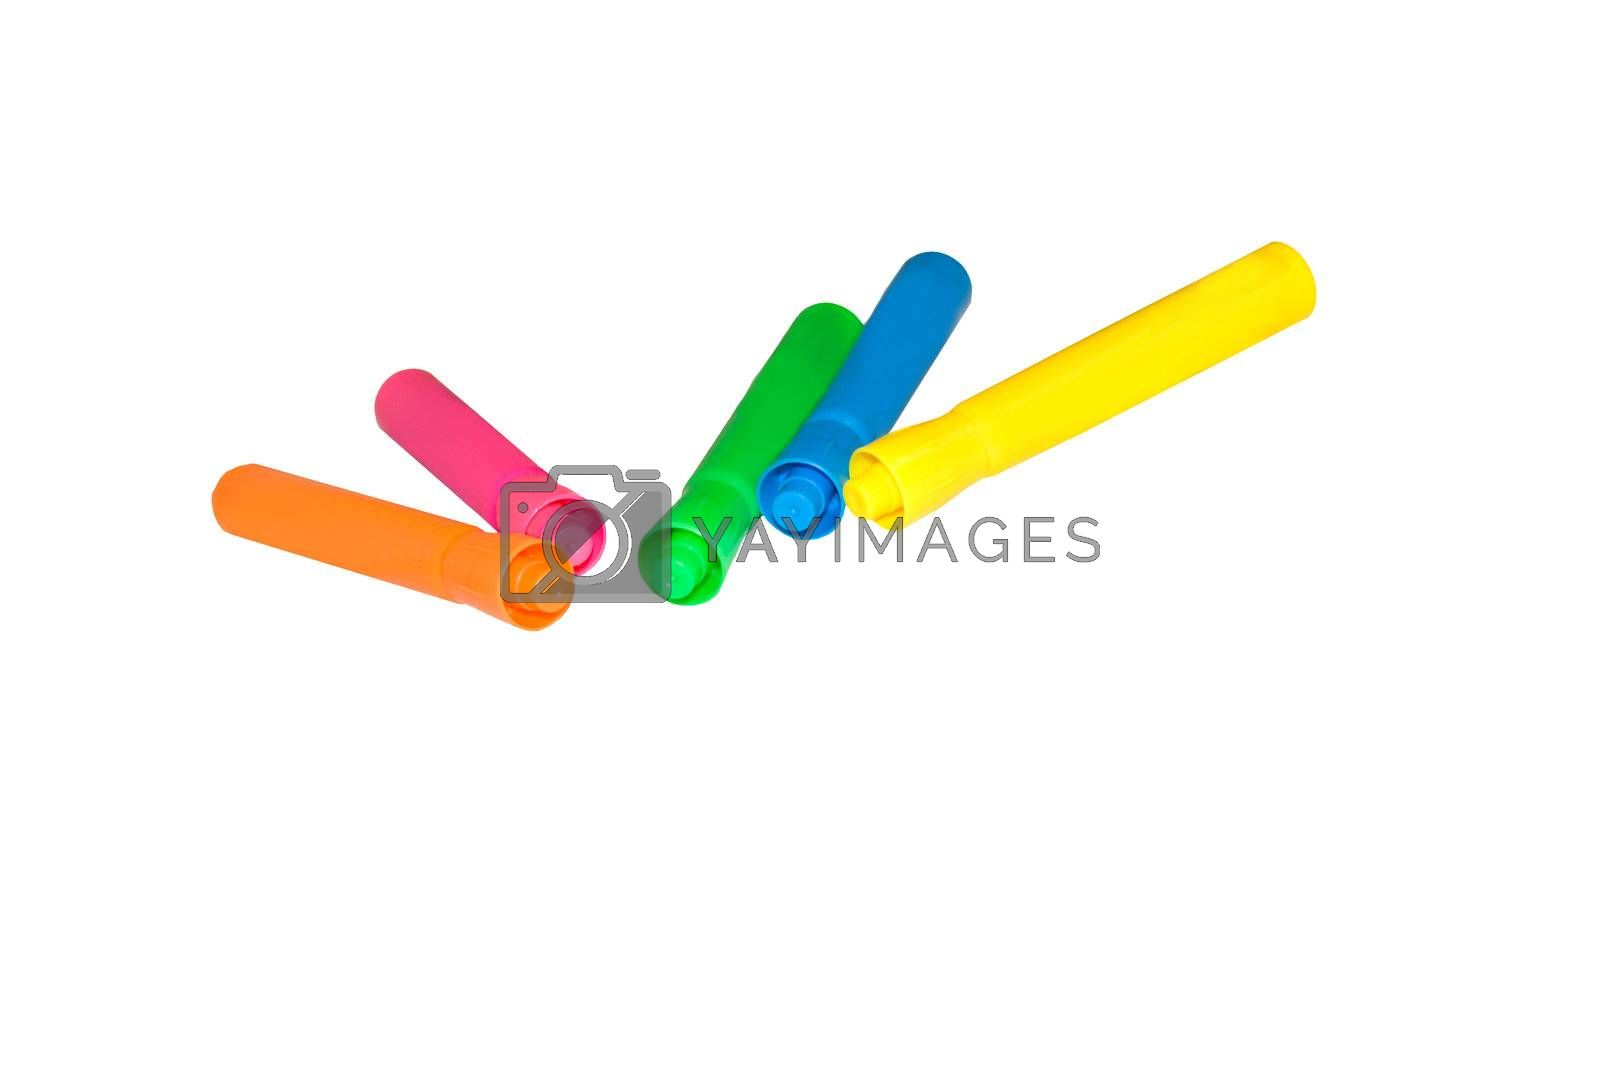 Highlighters v1 by mwp1969